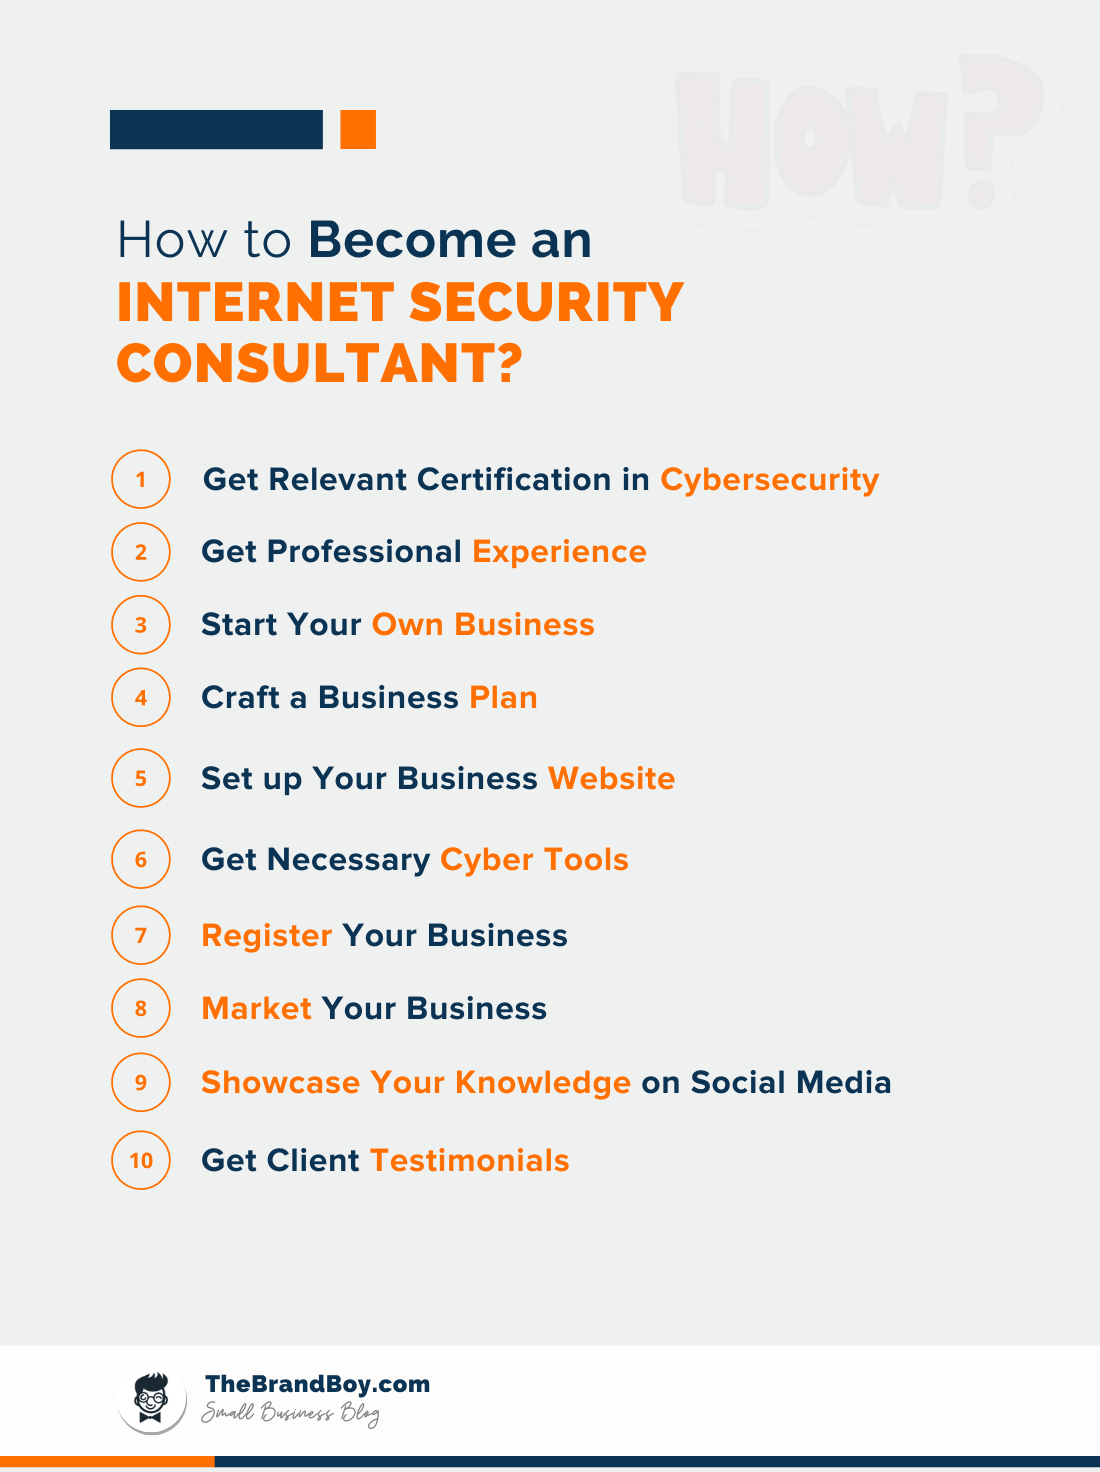 12 Top Business Ideas For Internet Security Consultant Security Consultant Top Business Ideas Internet Security